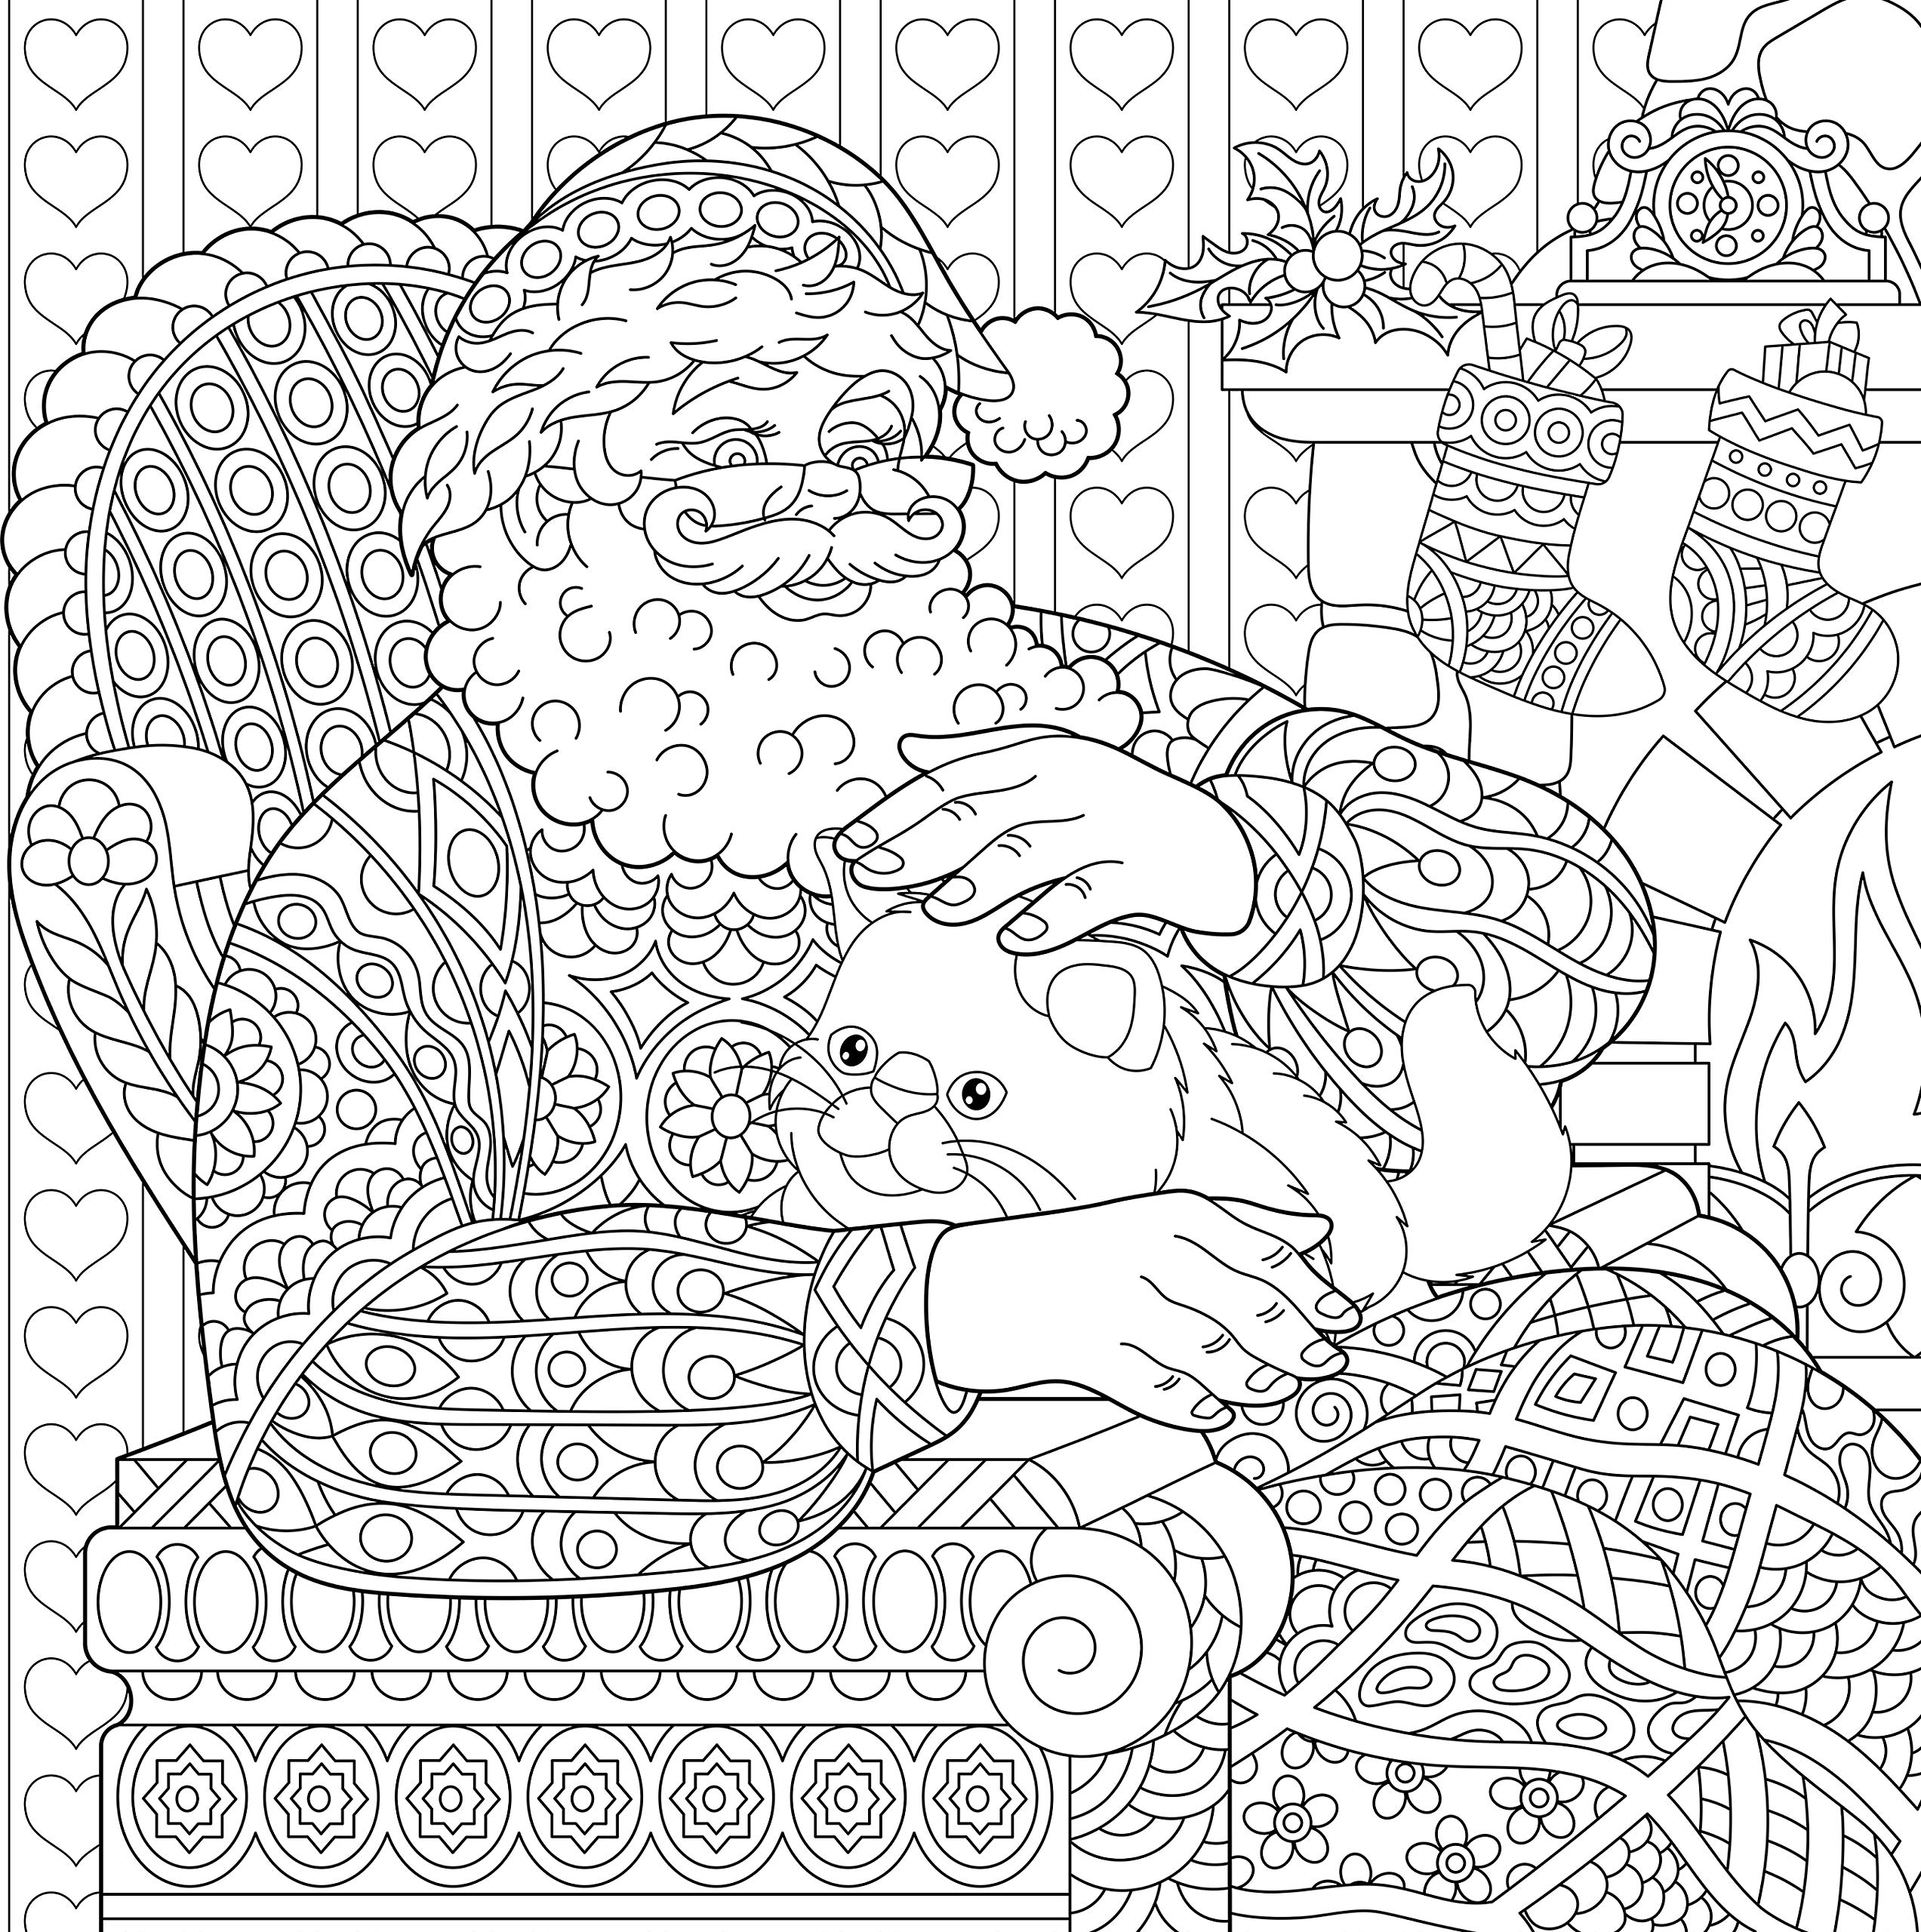 Santa Claus by the fireplace with a cat